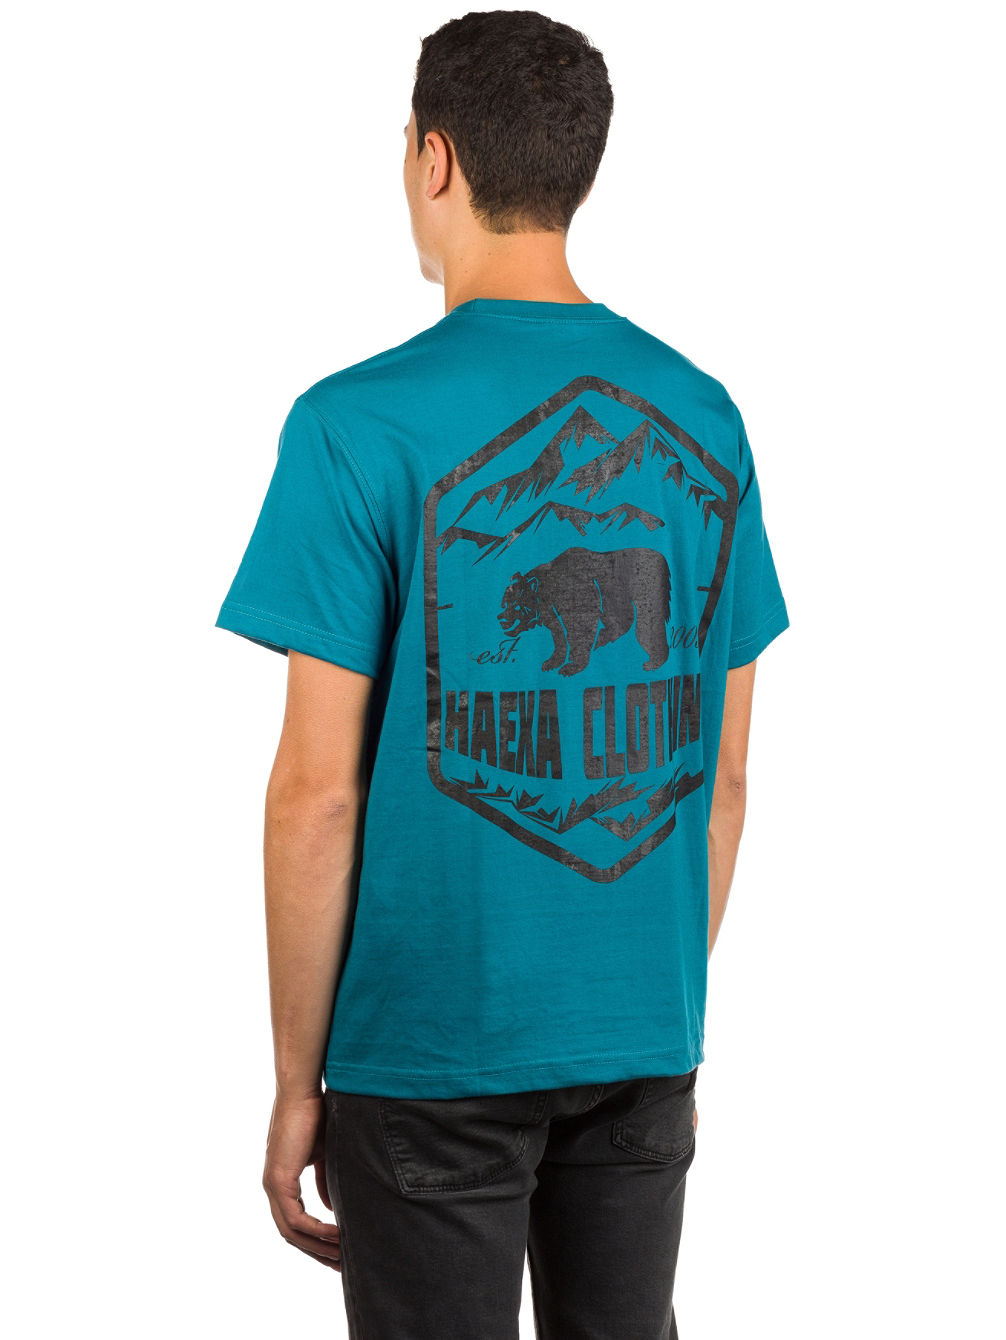 Wildlife Blue T-Shirt